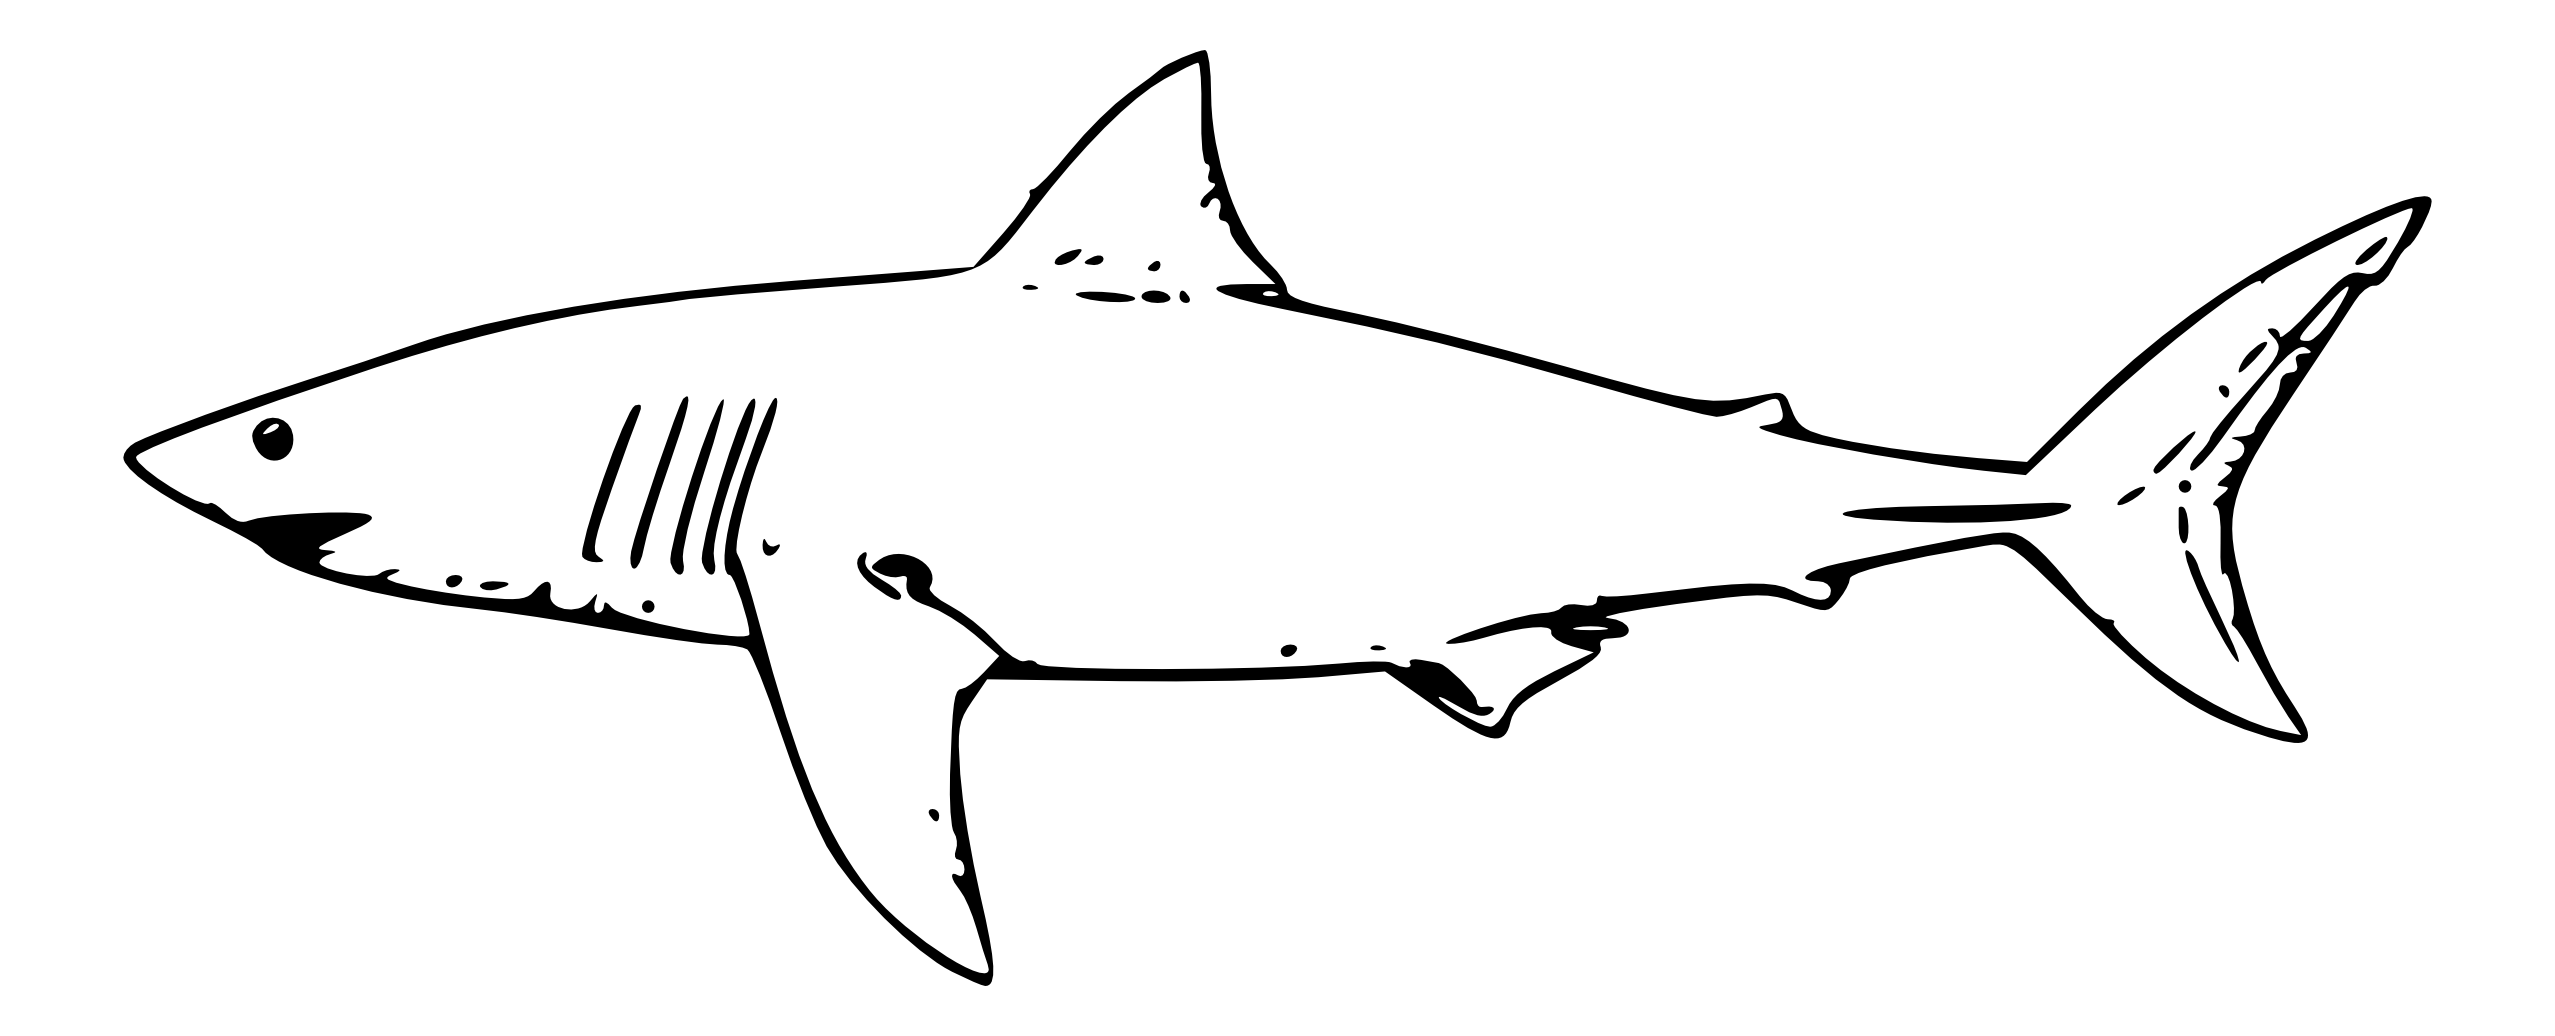 Line Drawing Shark : Shark line art clipart best